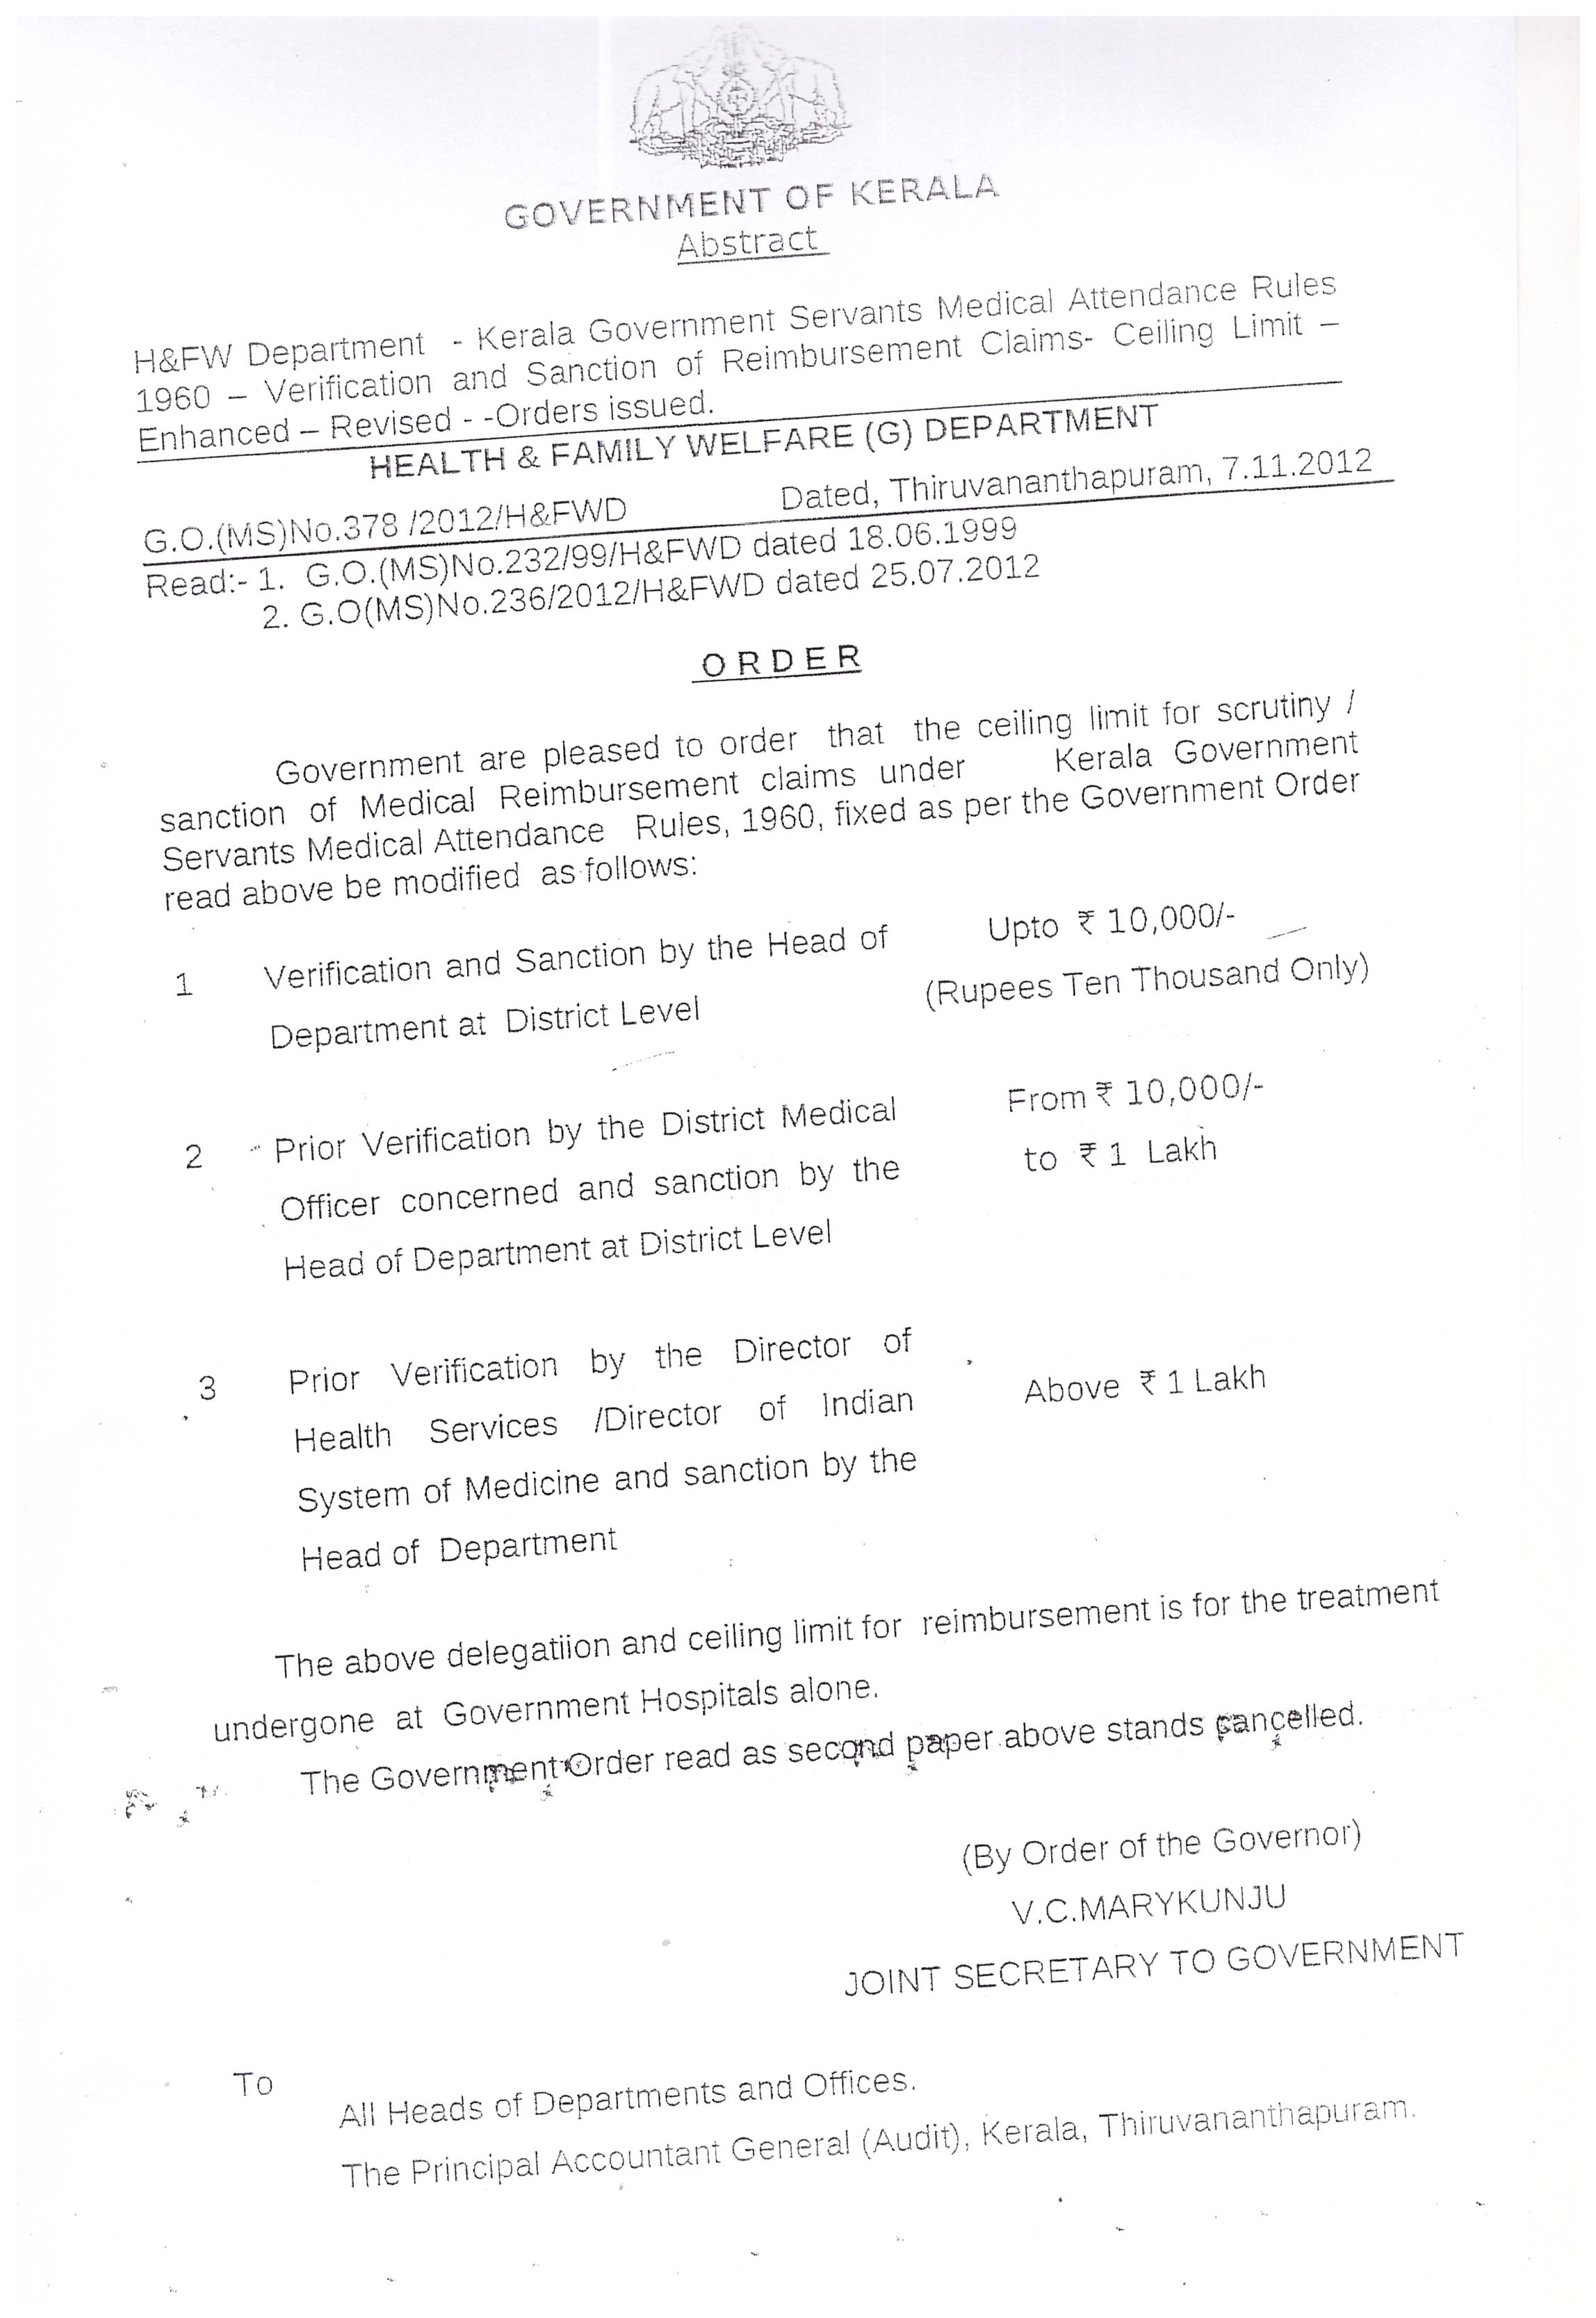 Government polytechnic college adoor govtorder verification sanction of medical reimbursement claims ceiling limit enhanced revised order issued on 7 11 2012 yadclub Image collections